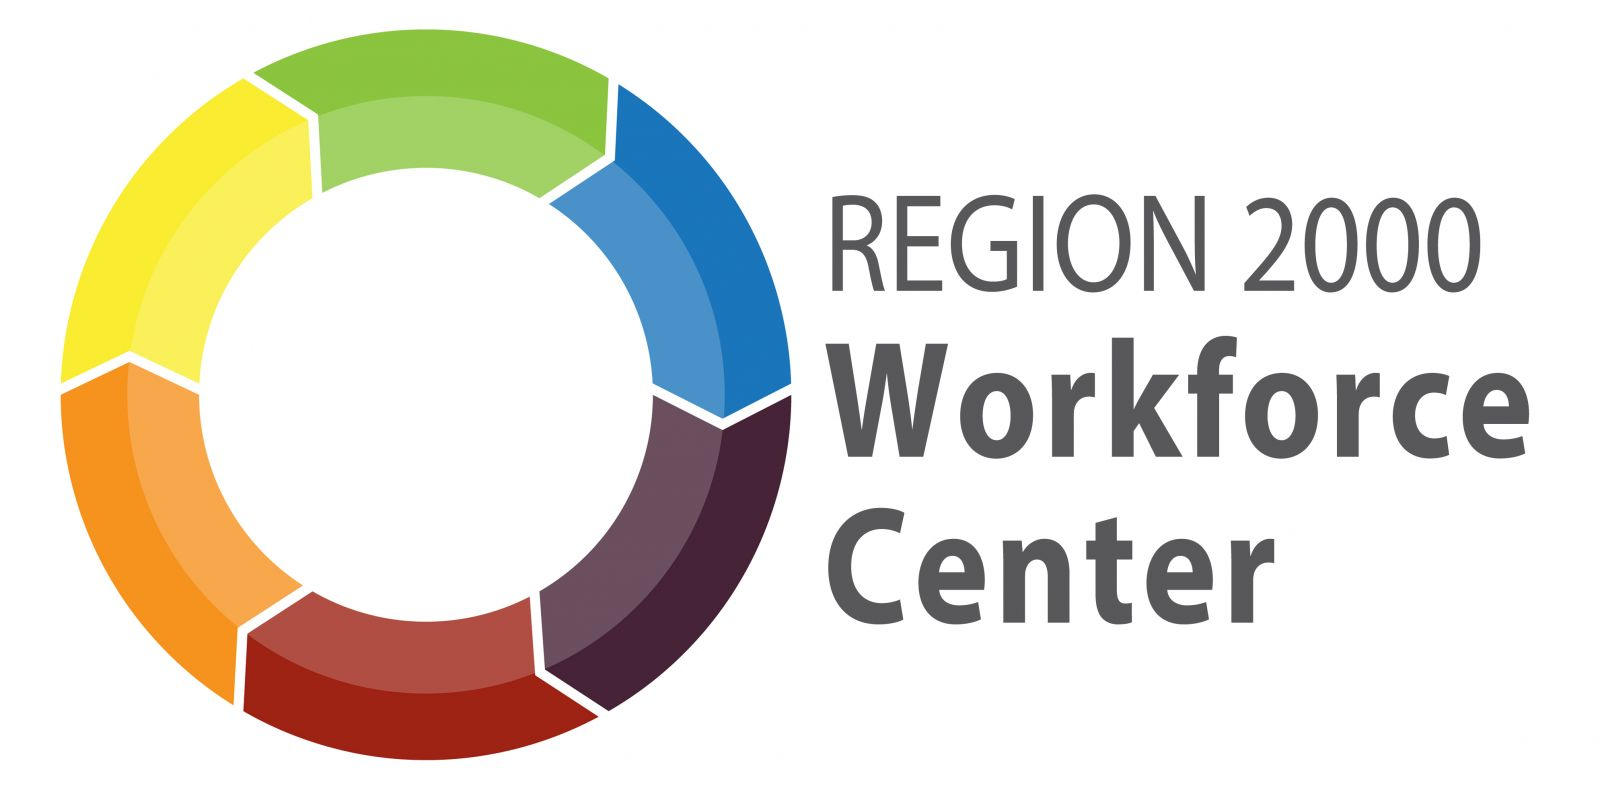 Region 2000 Workforce Center Orientation - Brookneal @ Patrick Henry Memorial Library | Brookneal | Virginia | United States